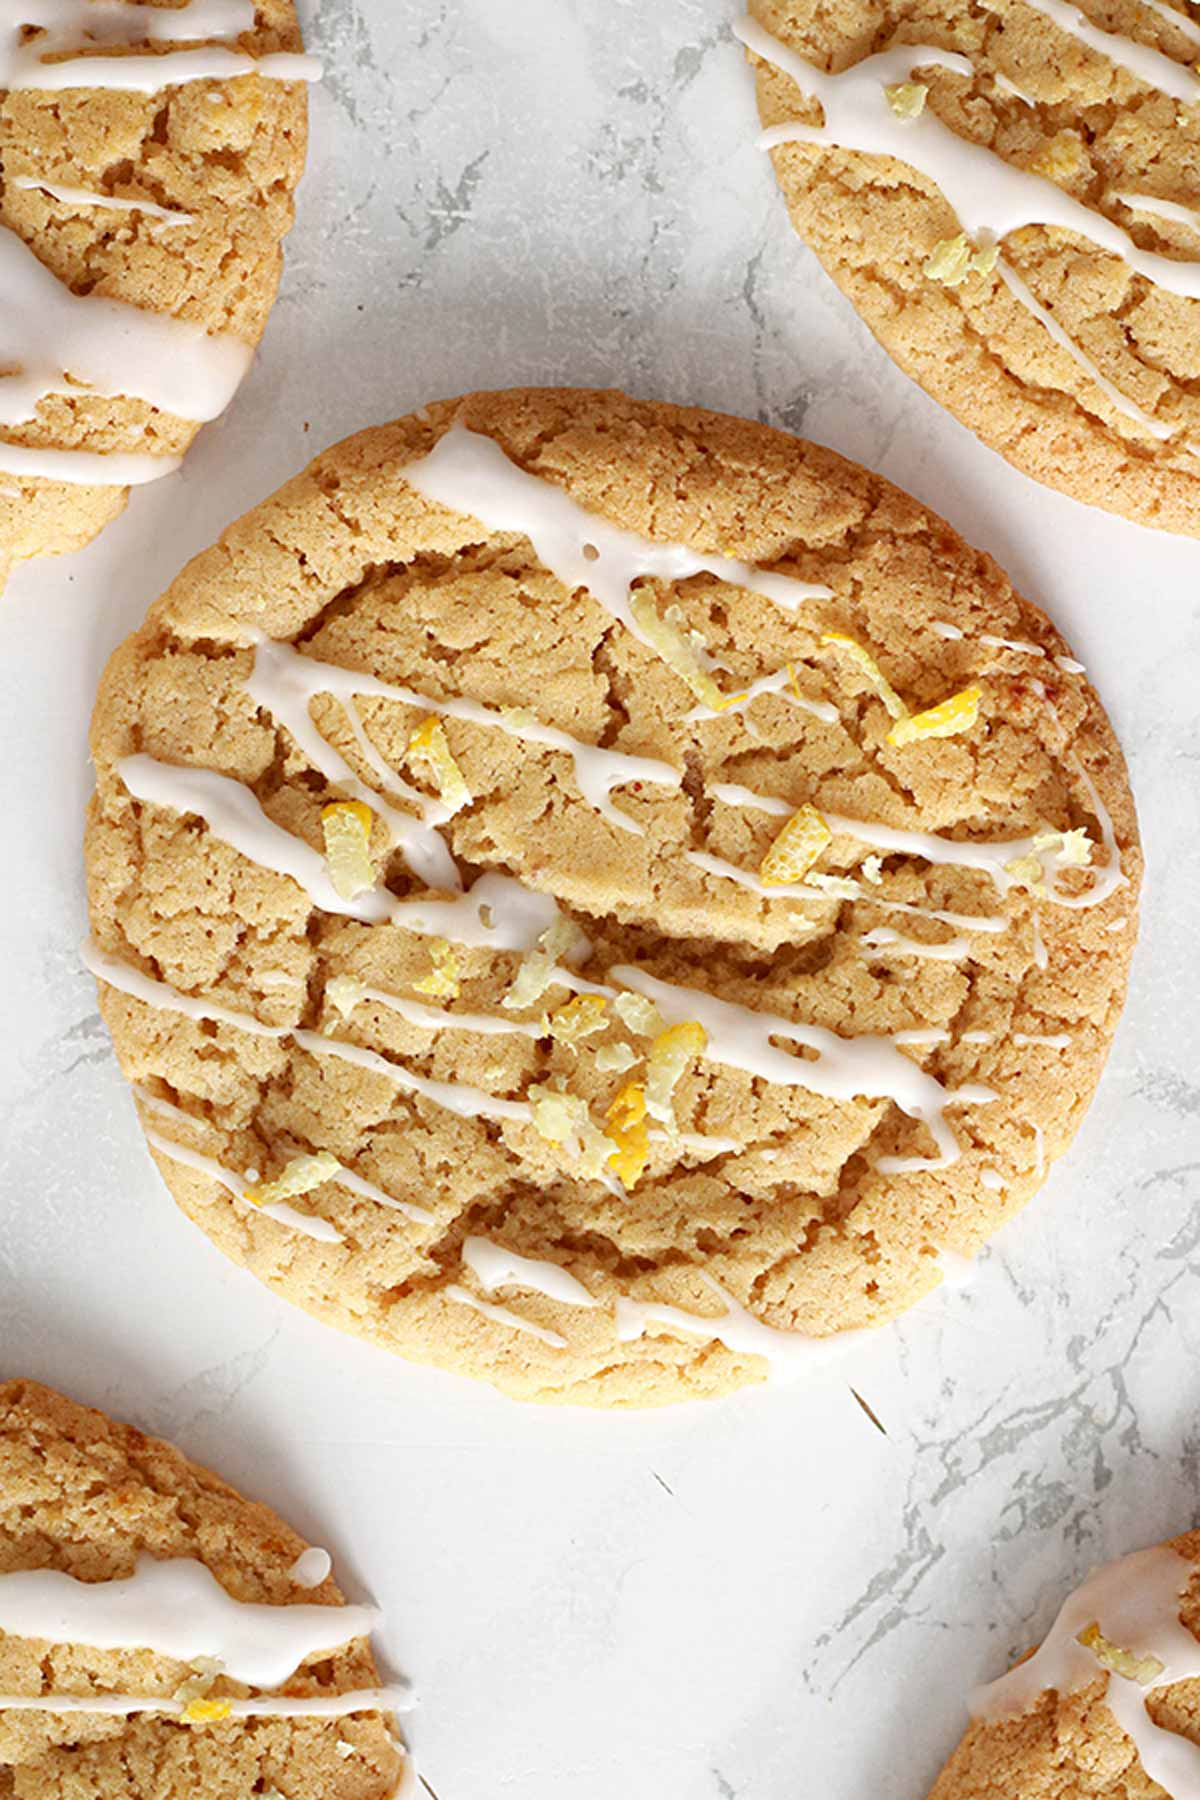 Lemon Drizzle Cookies Laid Out On White Surface